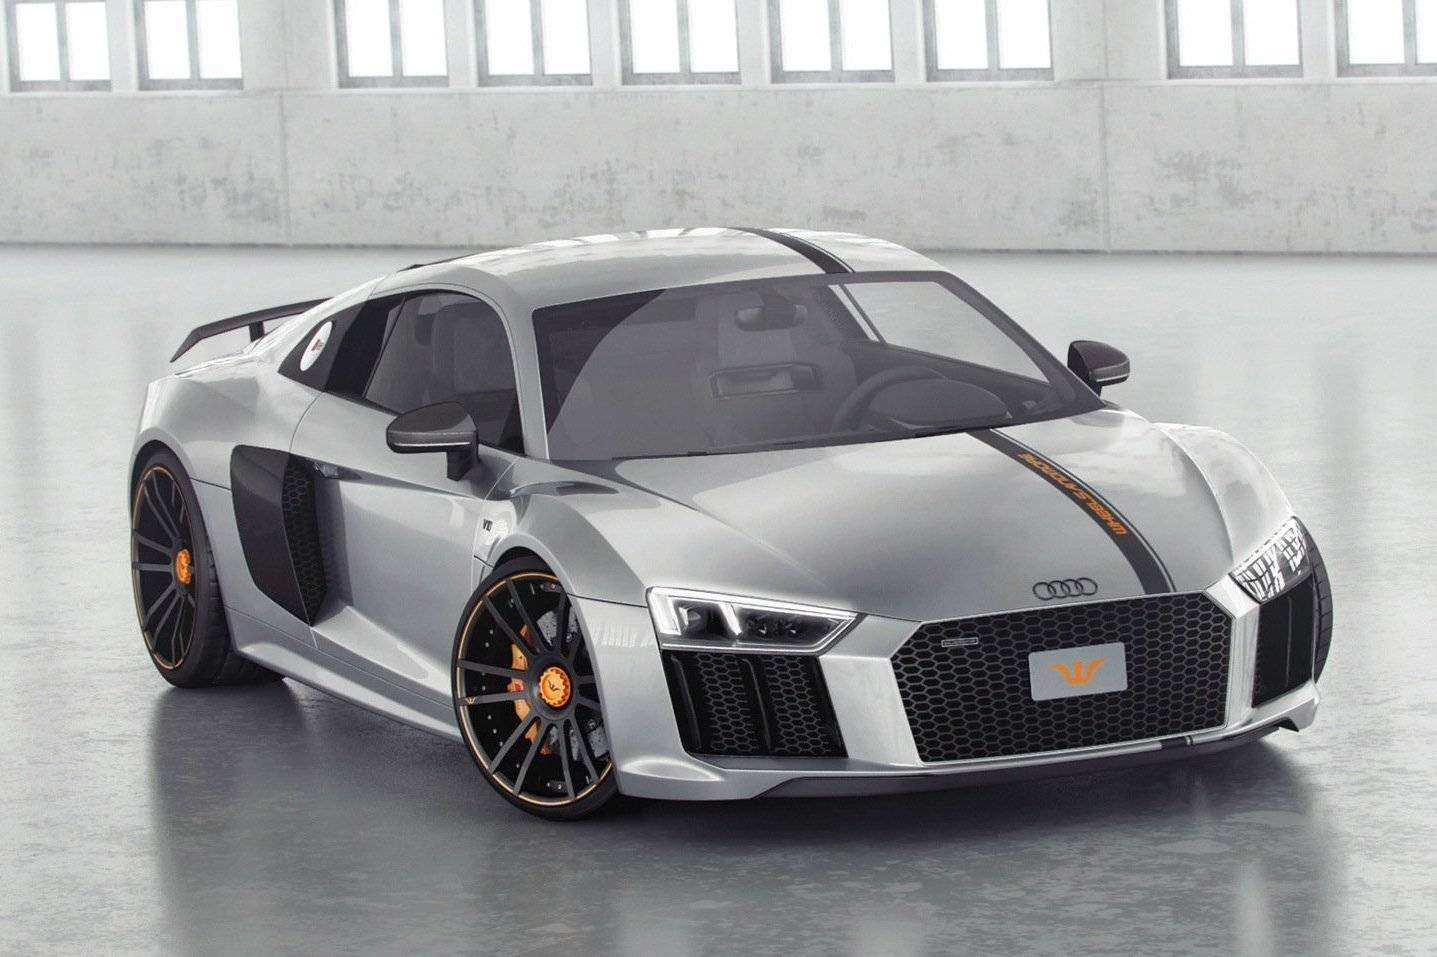 audi r8 v10 plus opgefokt tot 850 pk tuning styling. Black Bedroom Furniture Sets. Home Design Ideas